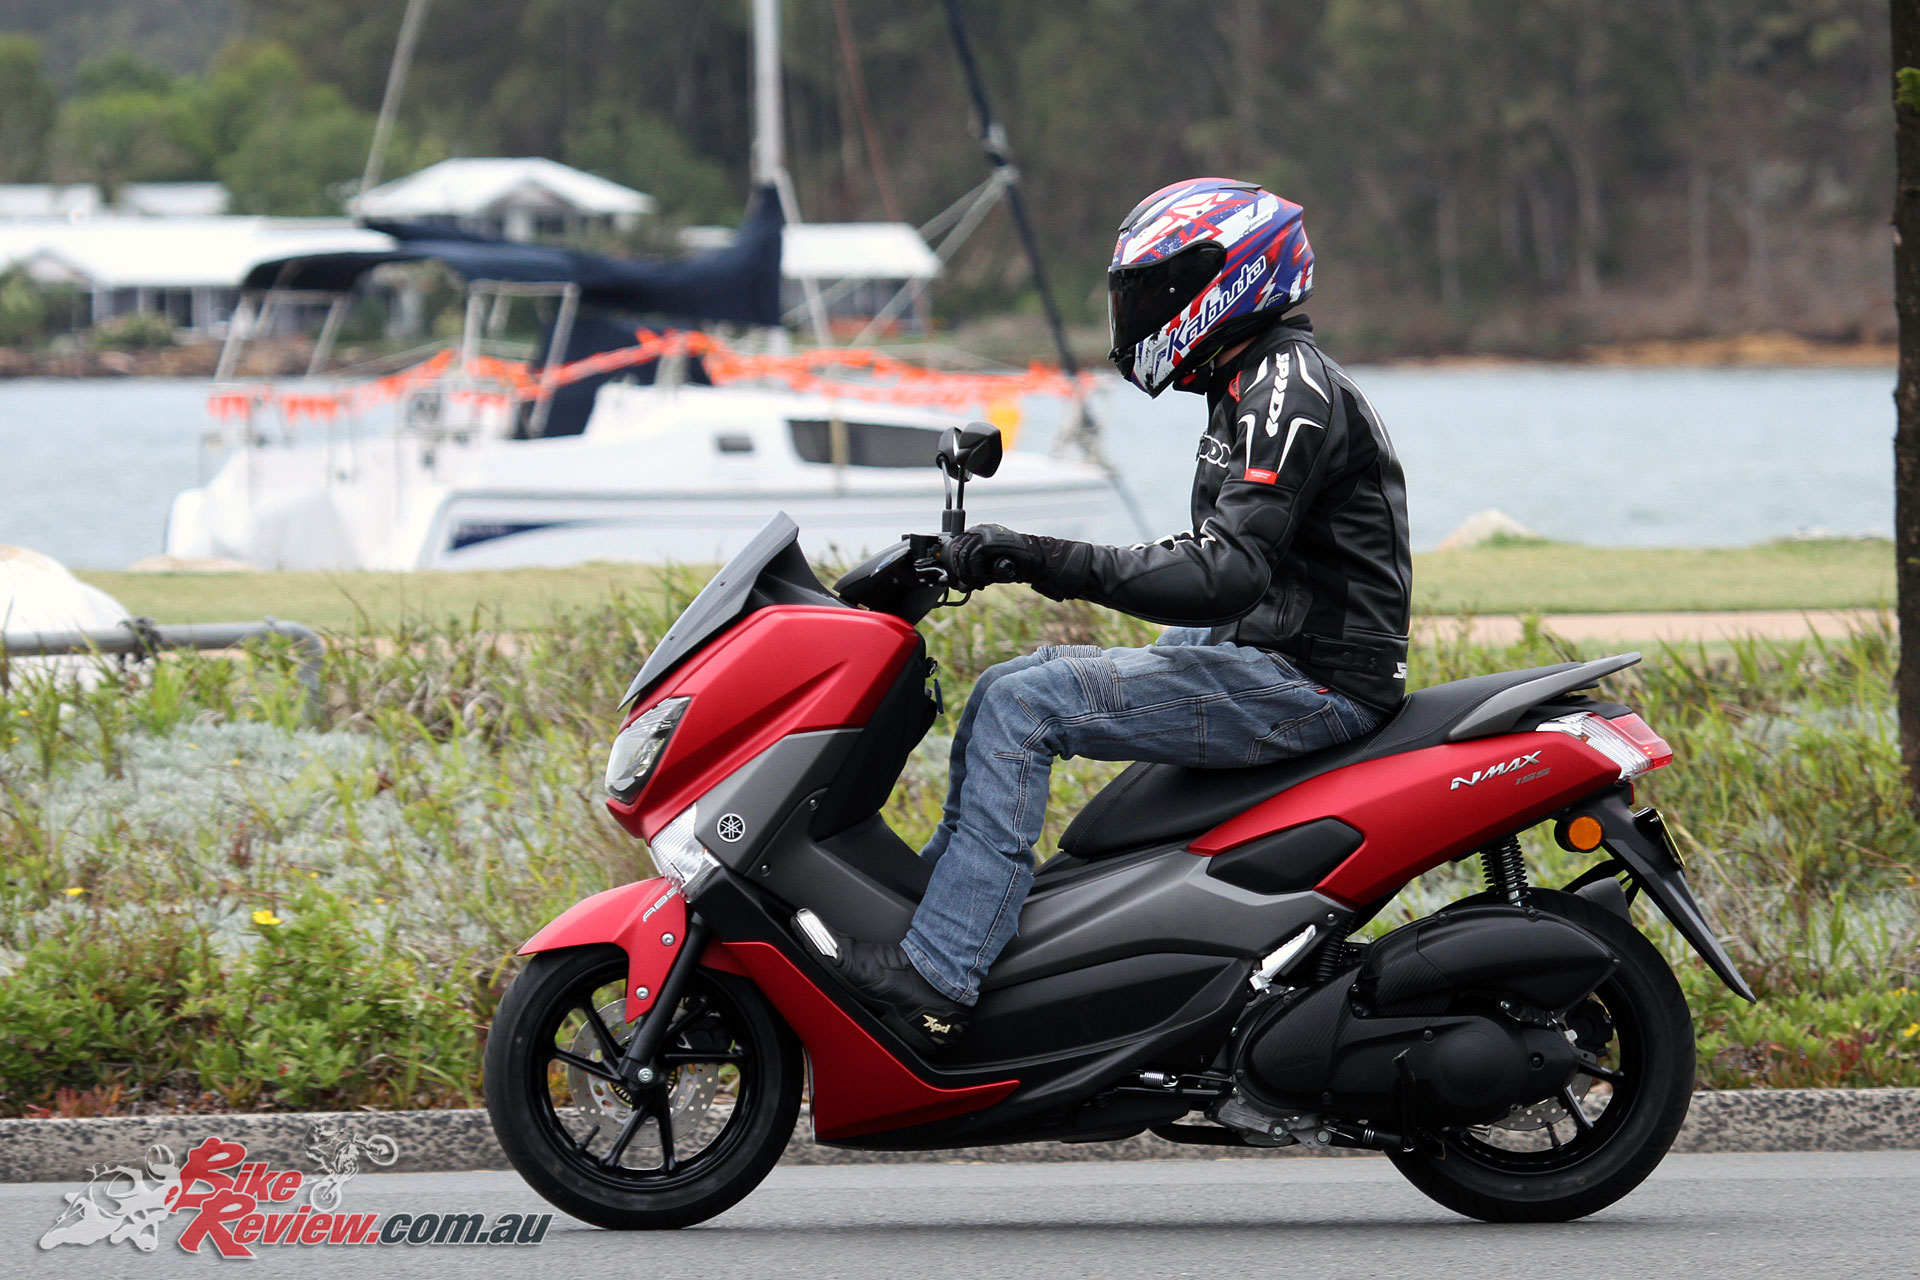 Video Review: 2018 Yamaha NMAX 155 Scooter